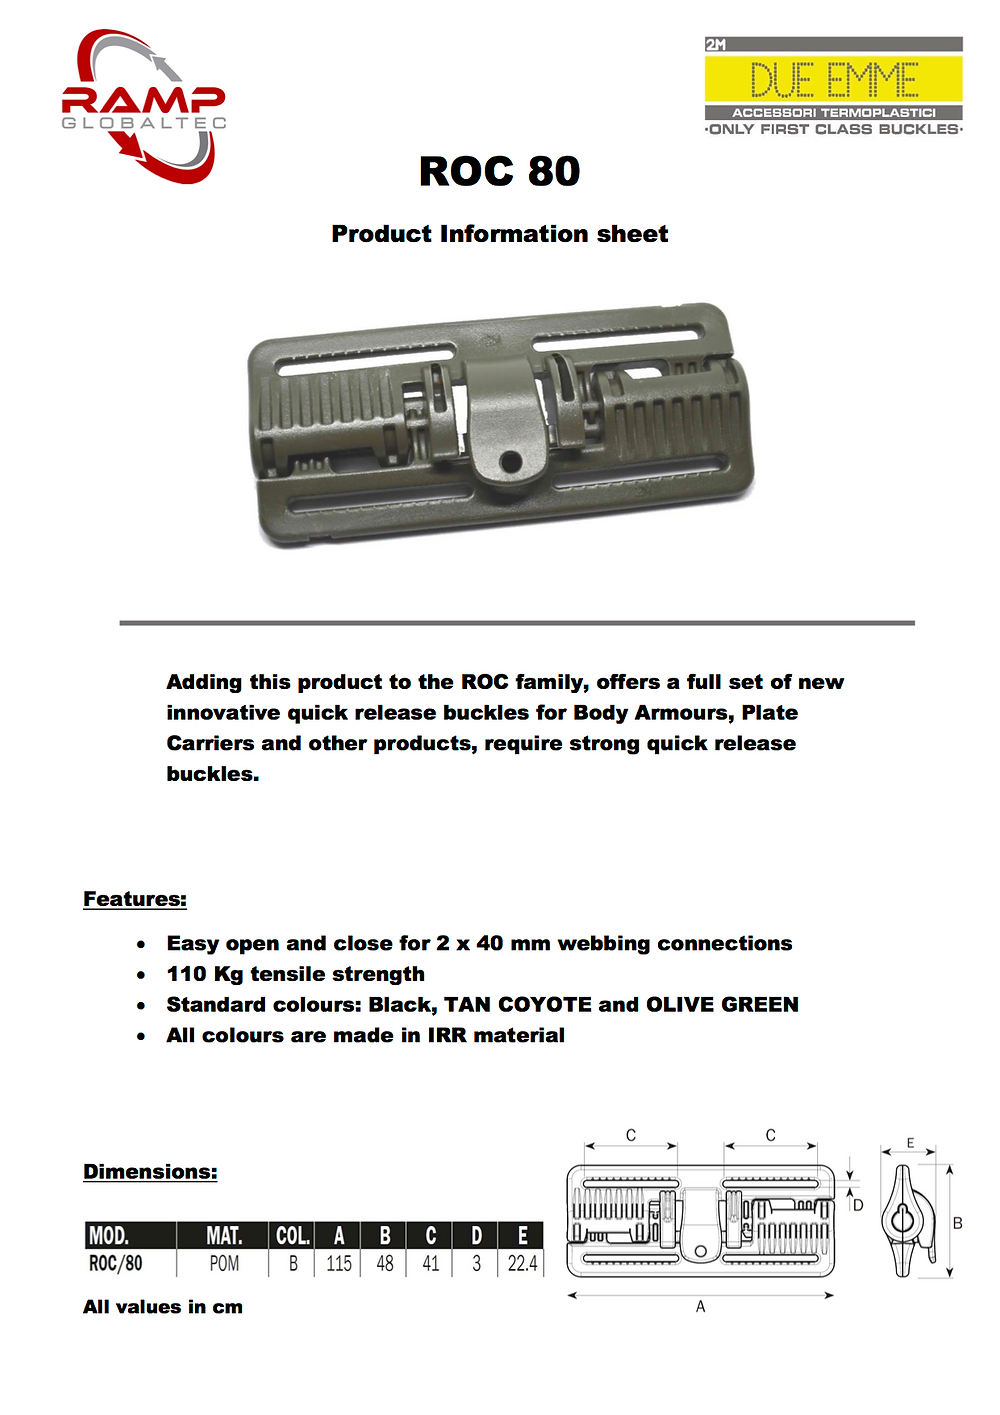 Download ROC 80 product information sheet